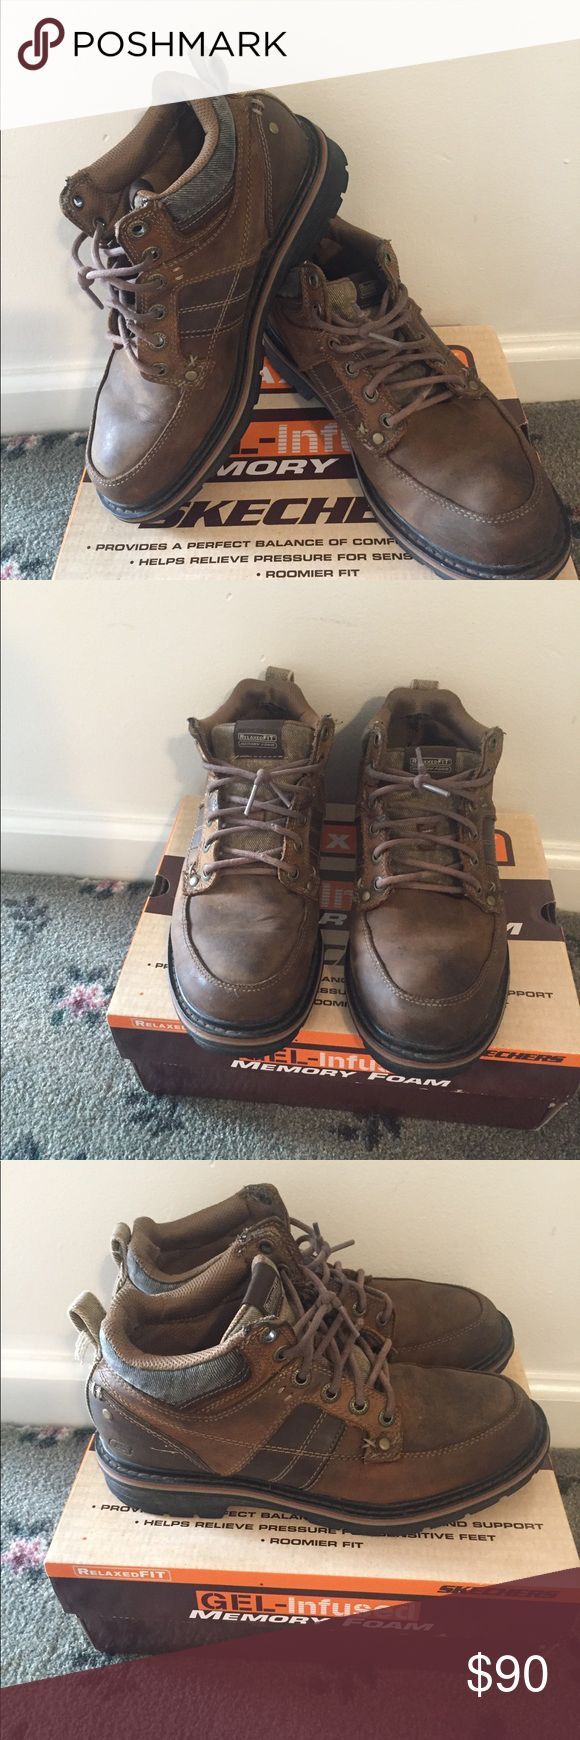 Skechers boots for mens. RelaxedFIT.  Memory Foam. Great condition! Skechers Shoes Boots